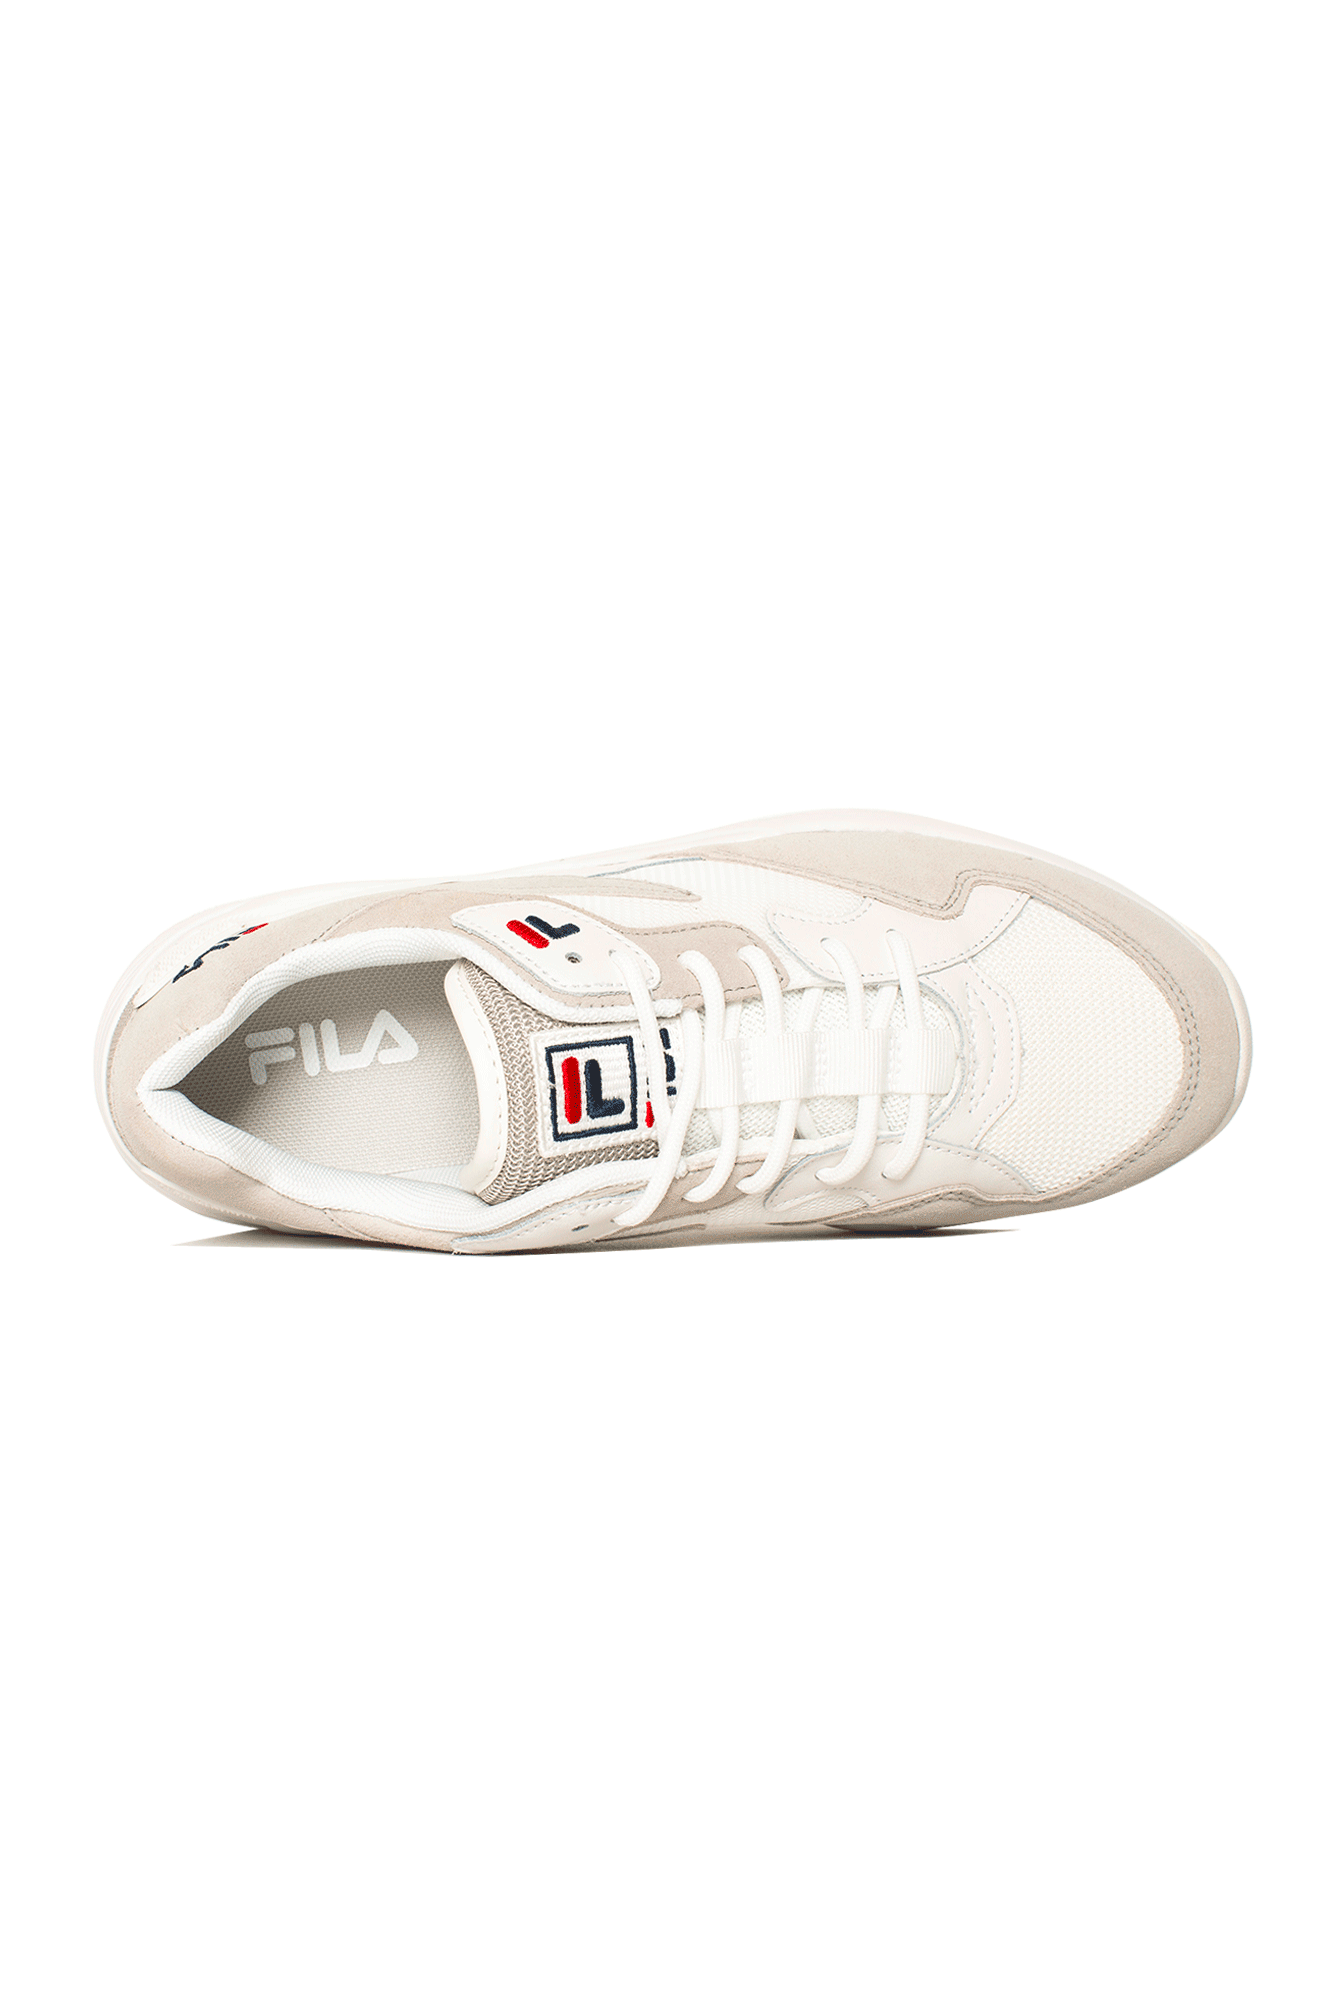 Fila Sneakers Vault CMR Jogger L Low Woman Bianco 1010622#000#1FG#6 - One Block Down